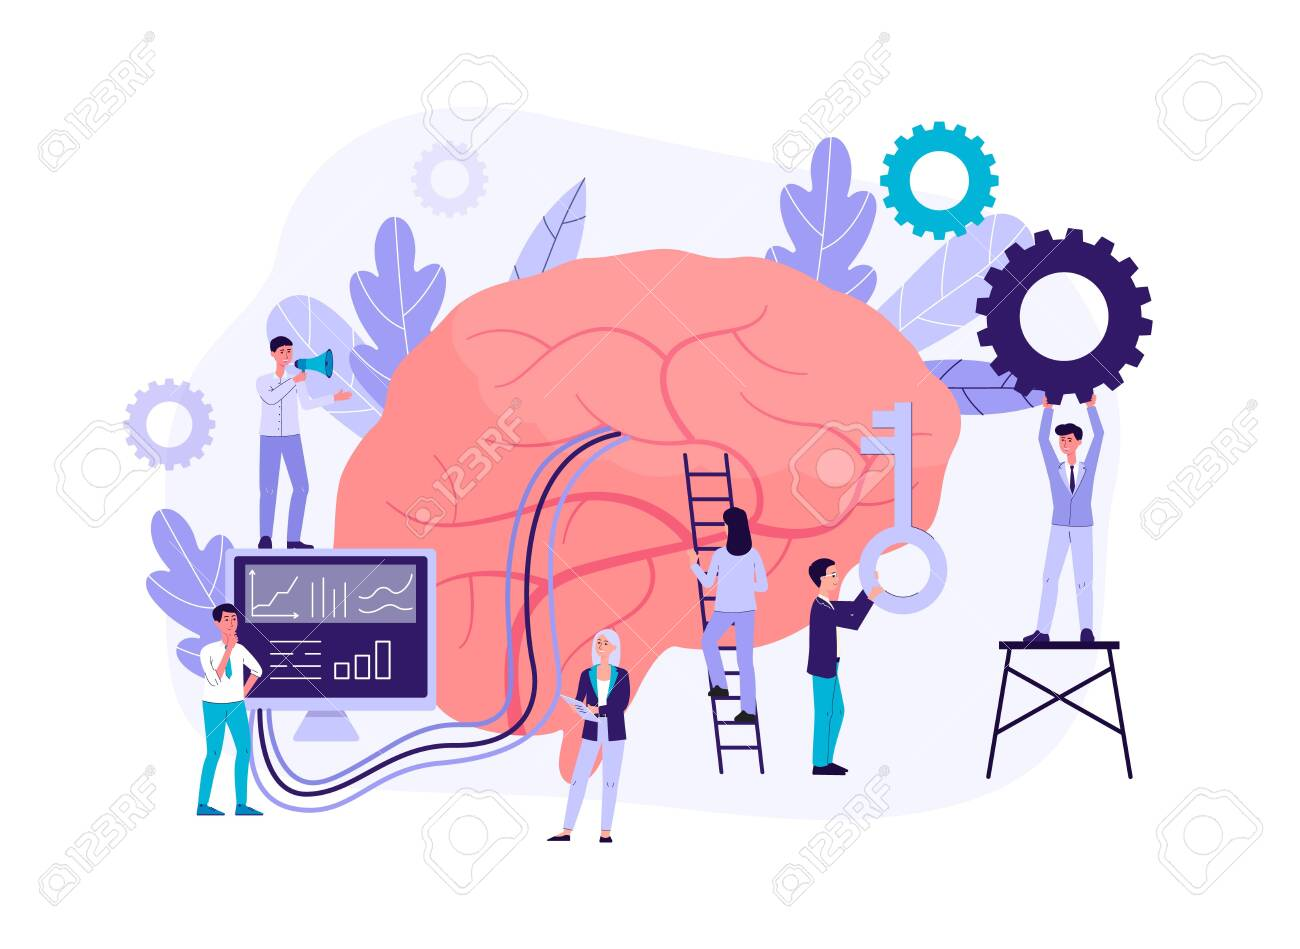 Neuromarketing technology concept with people cartoon characters analyzing customer behavior and developing marketing strategy, flat isolated vector illustration. - 154144314